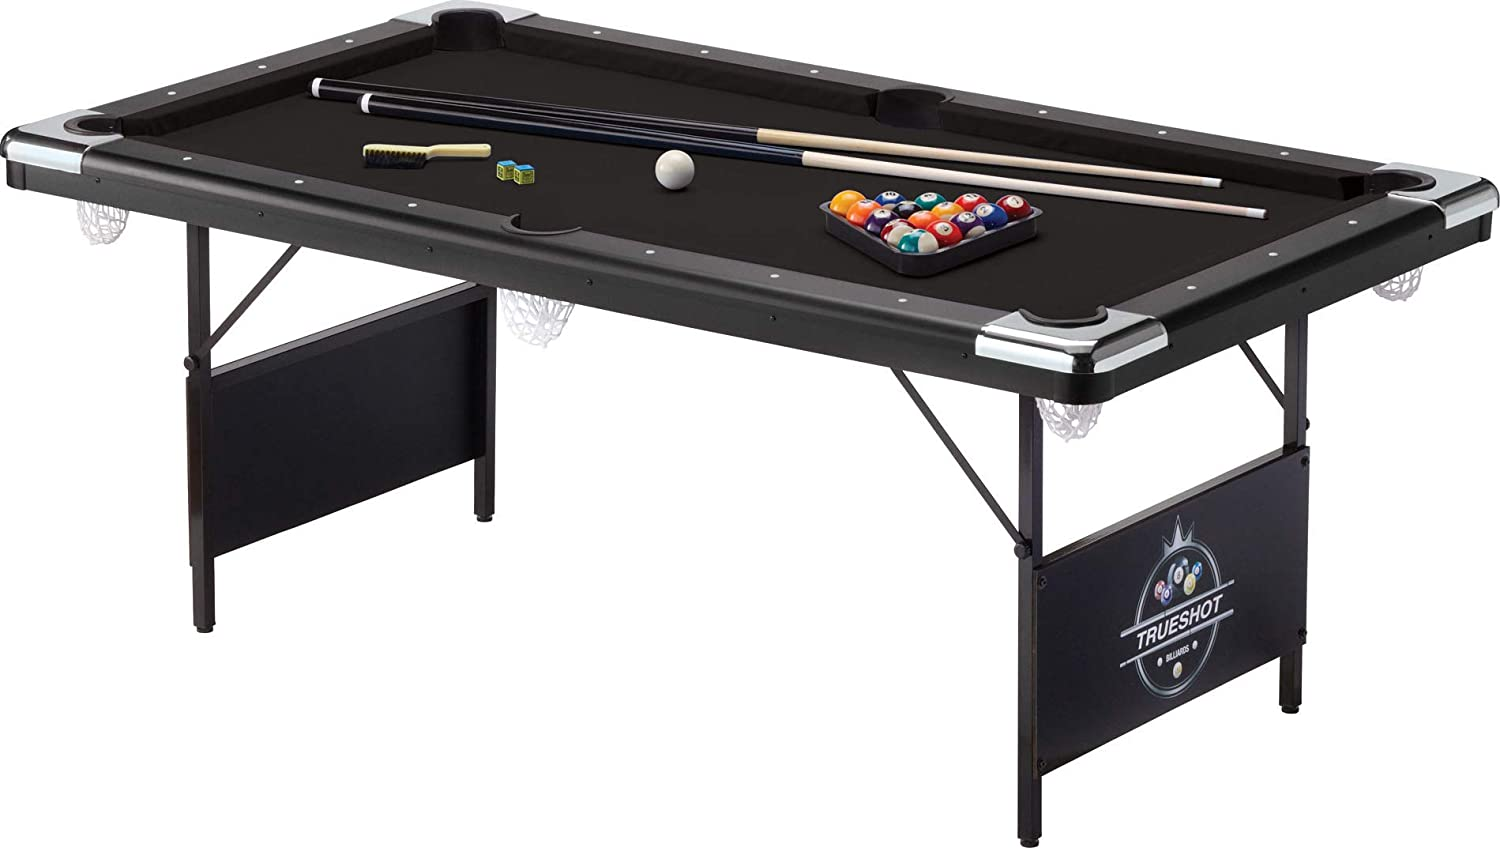 Fat Cat by GLD Products Fat Cat Trueshot 6' Pool Table